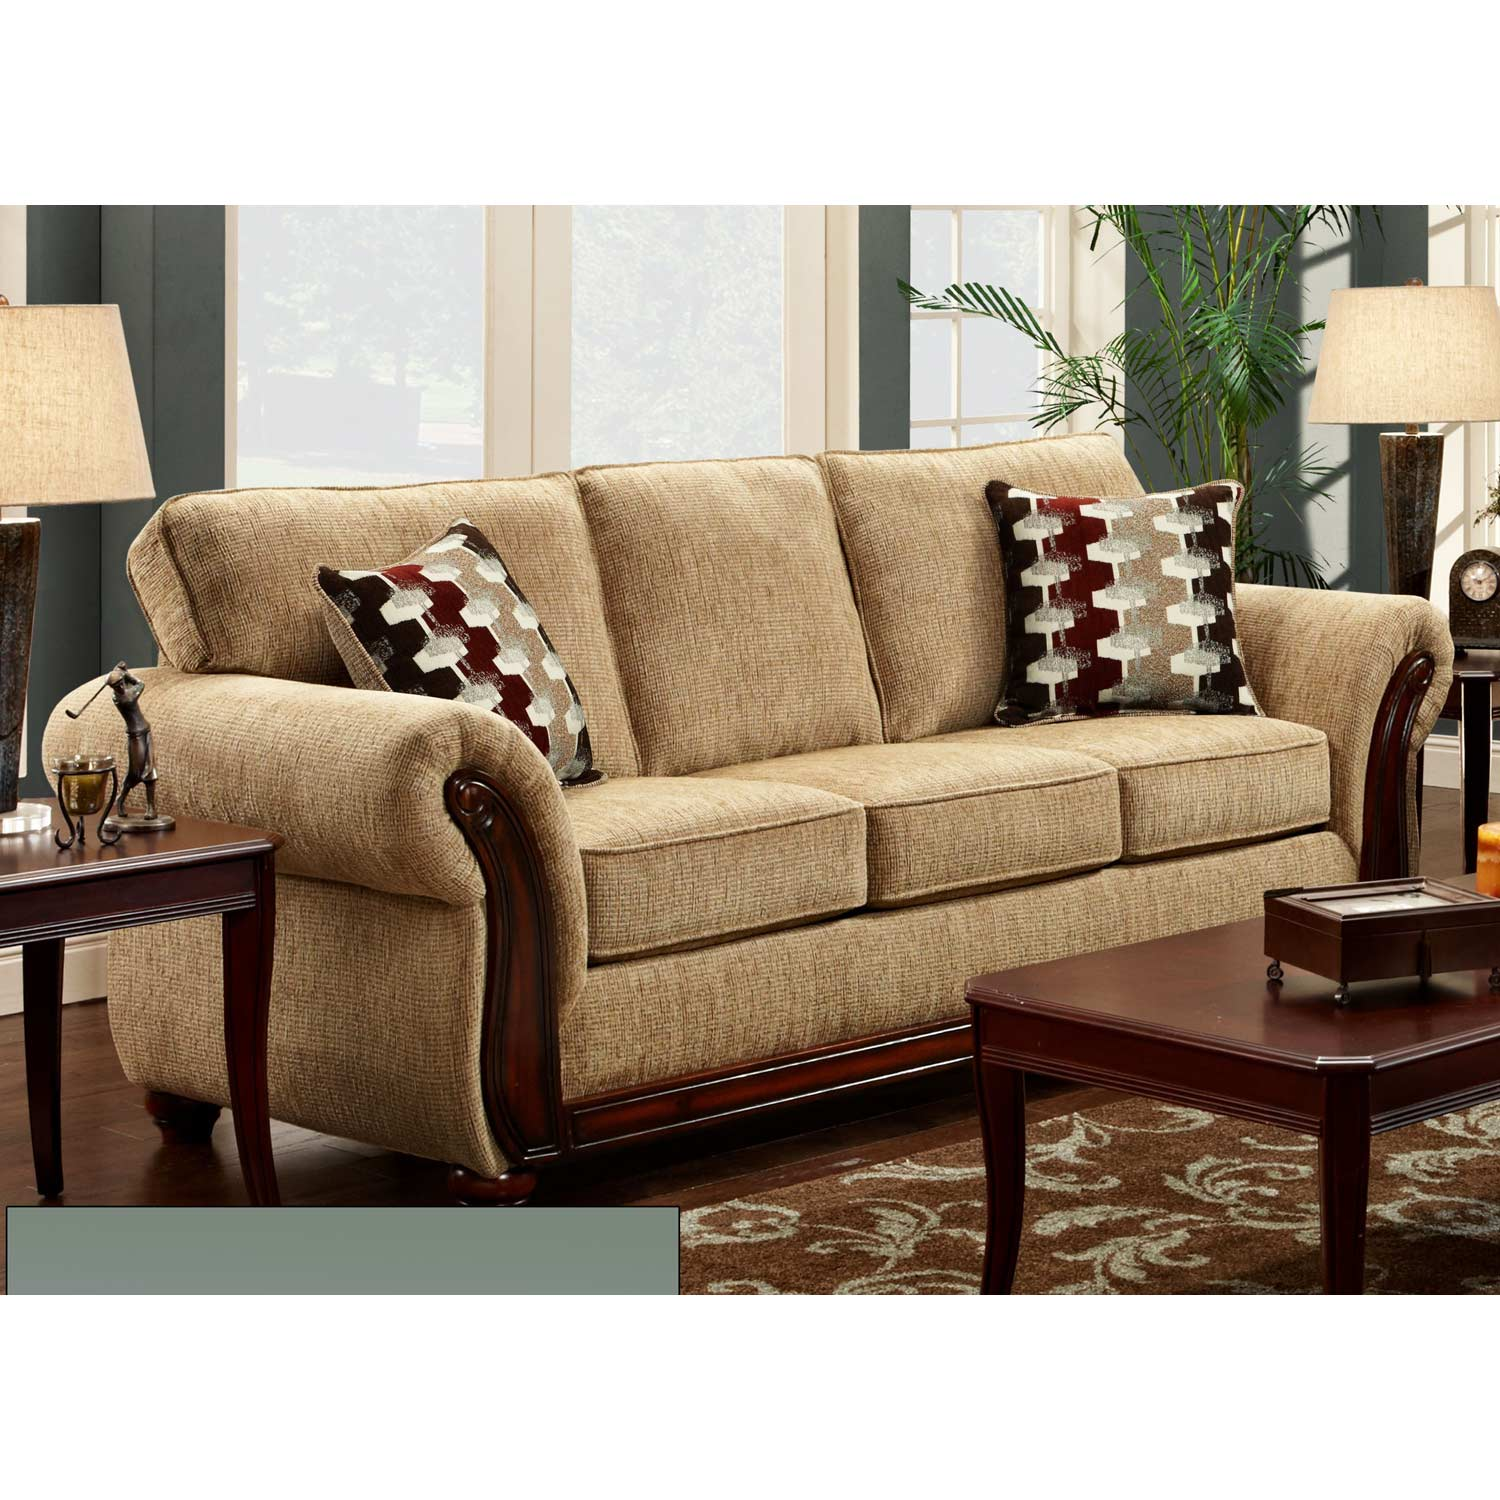 Courtney Rolled Arm Sofa - Wood Trim, Radar Havana - CHF-478100-S-RH